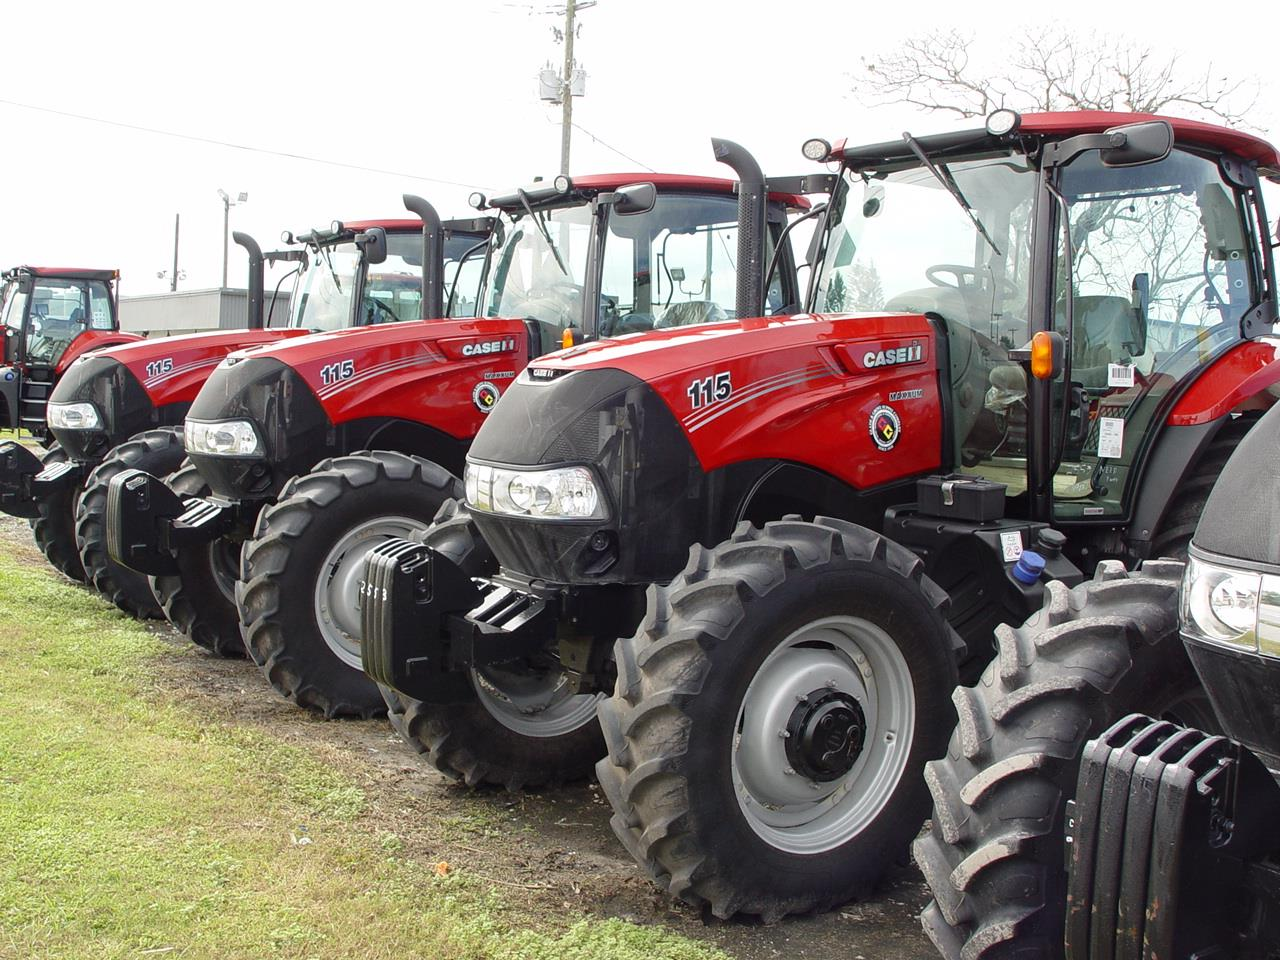 2015 Case Ih Maxxum 115 Limited Tractor For Sale In Belle